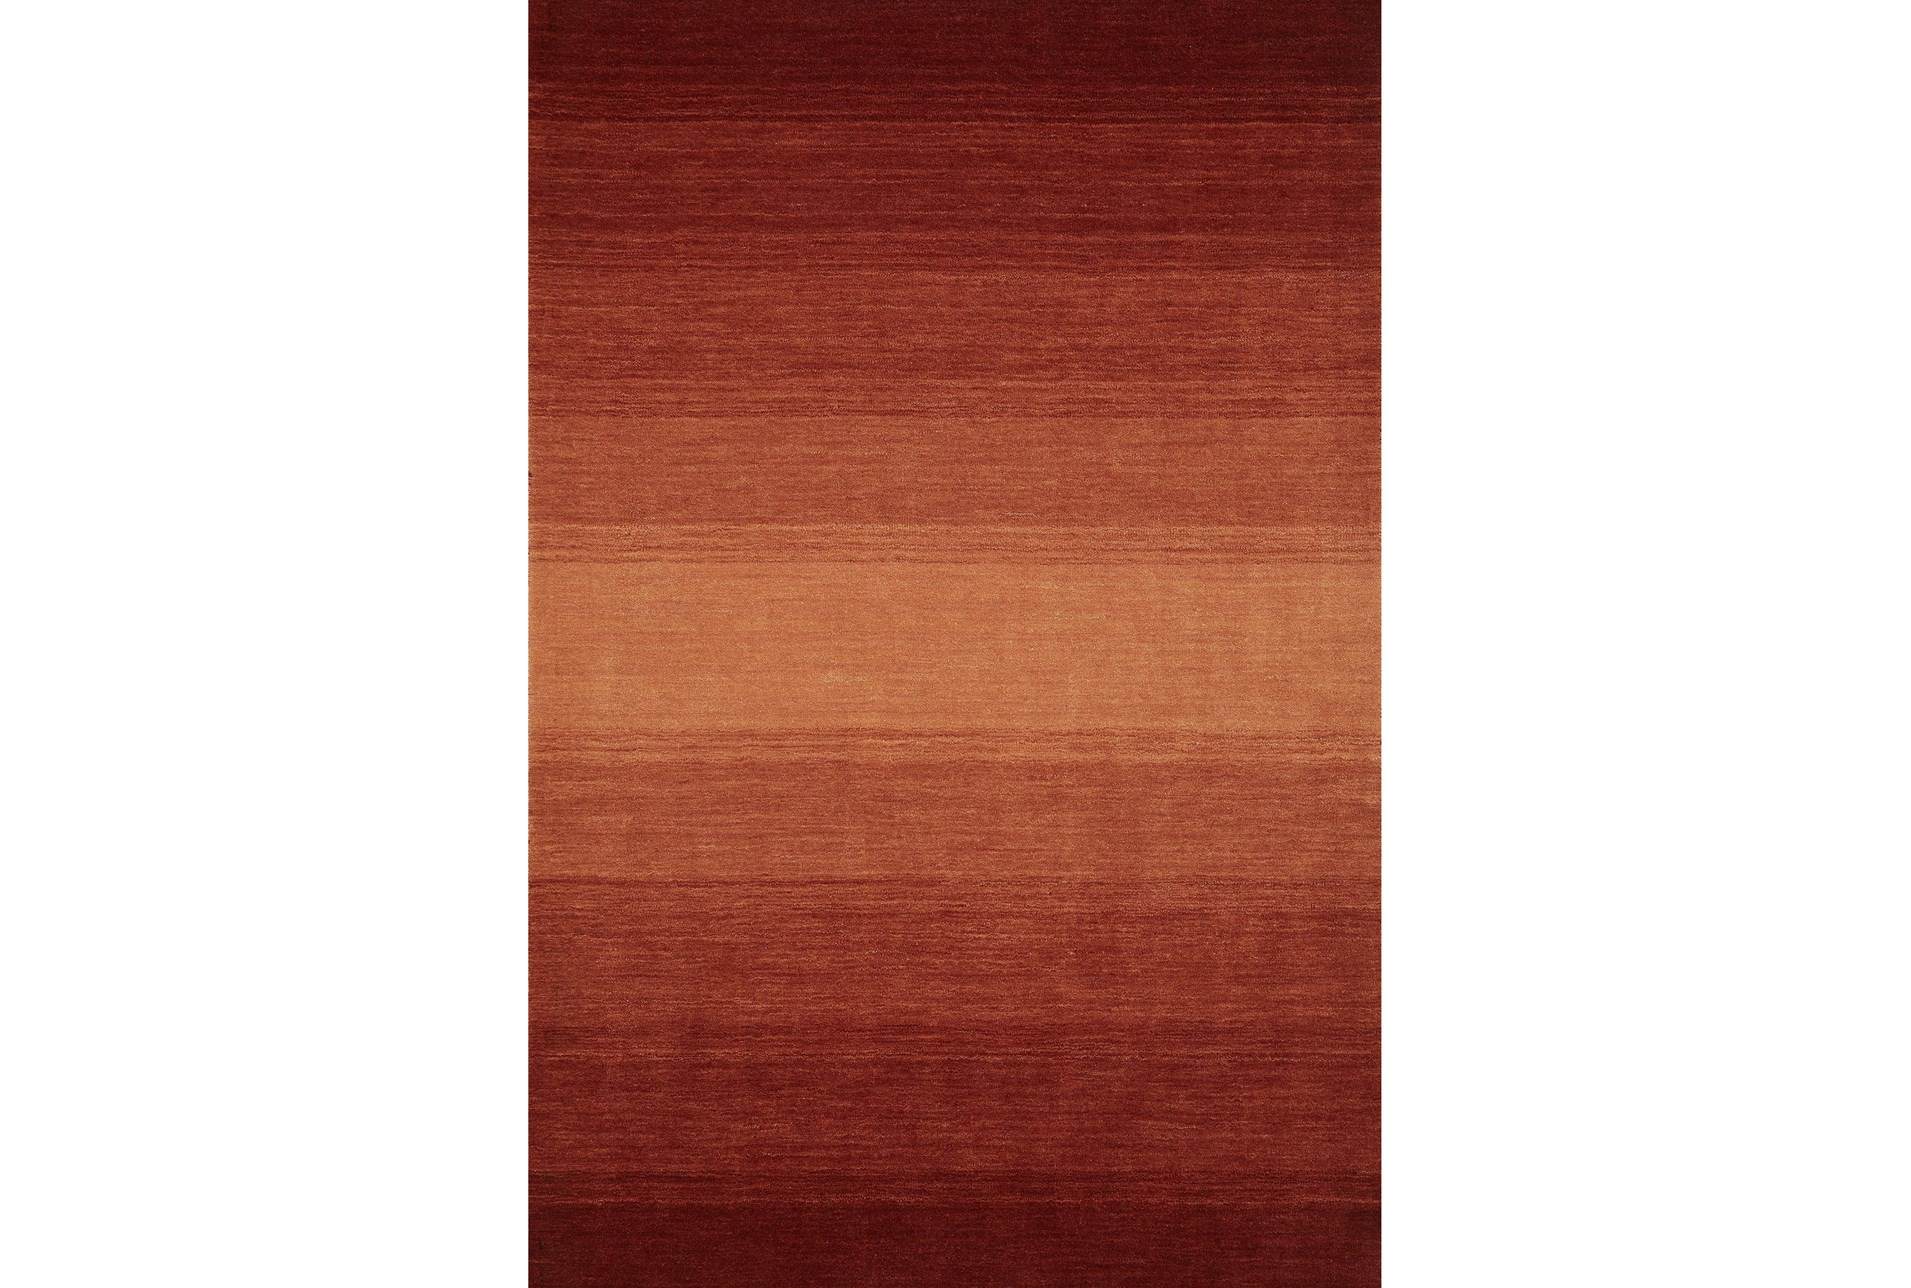 news s rockwells misty rug ombre david design the blue designs new company rockwell